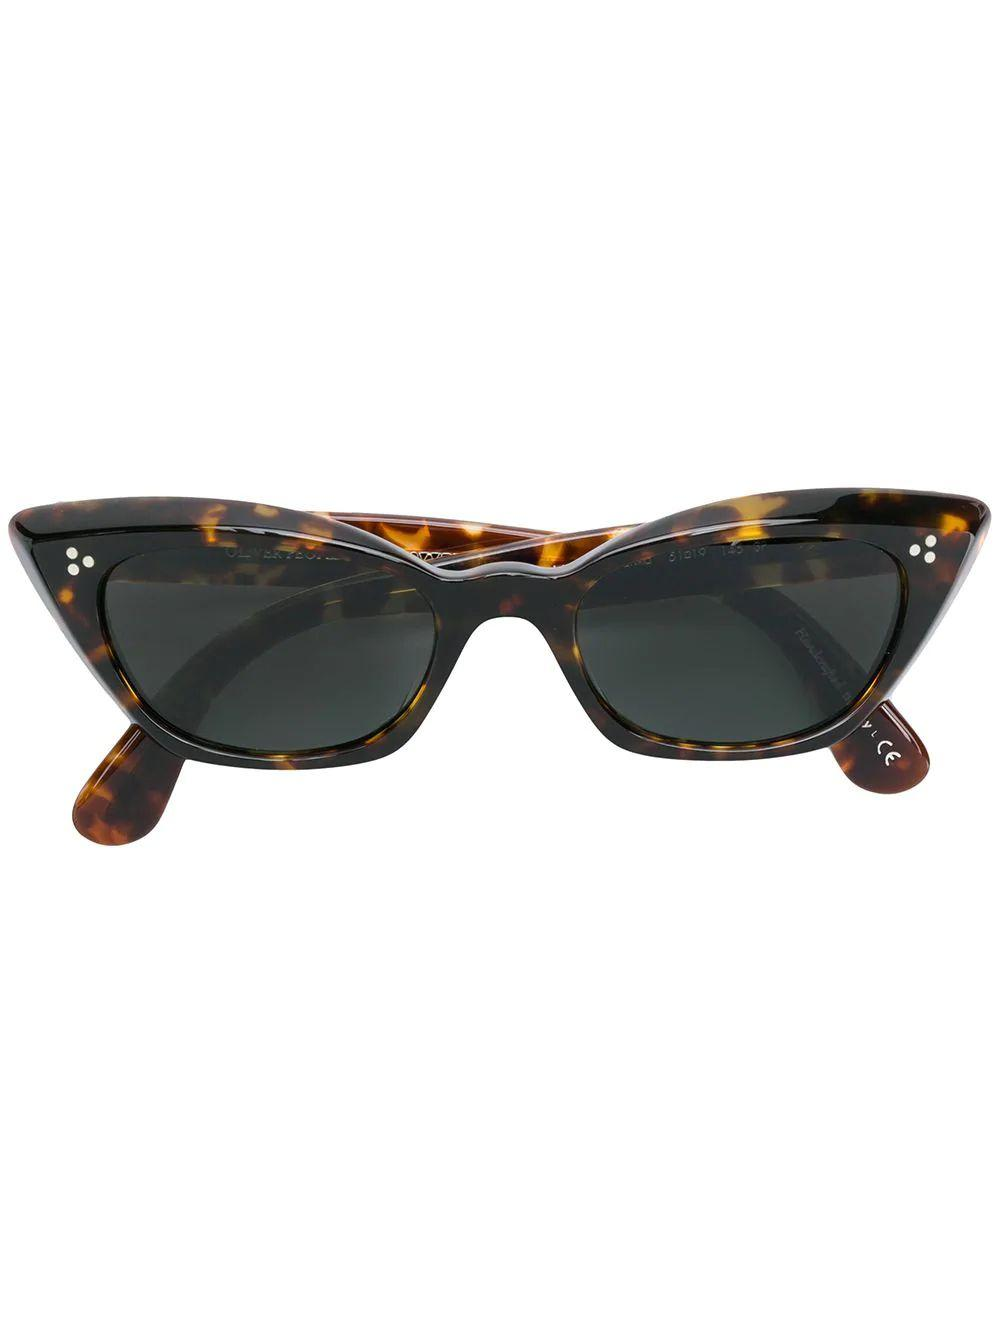 Bianca Polarized Item # 0OV5387SU-P